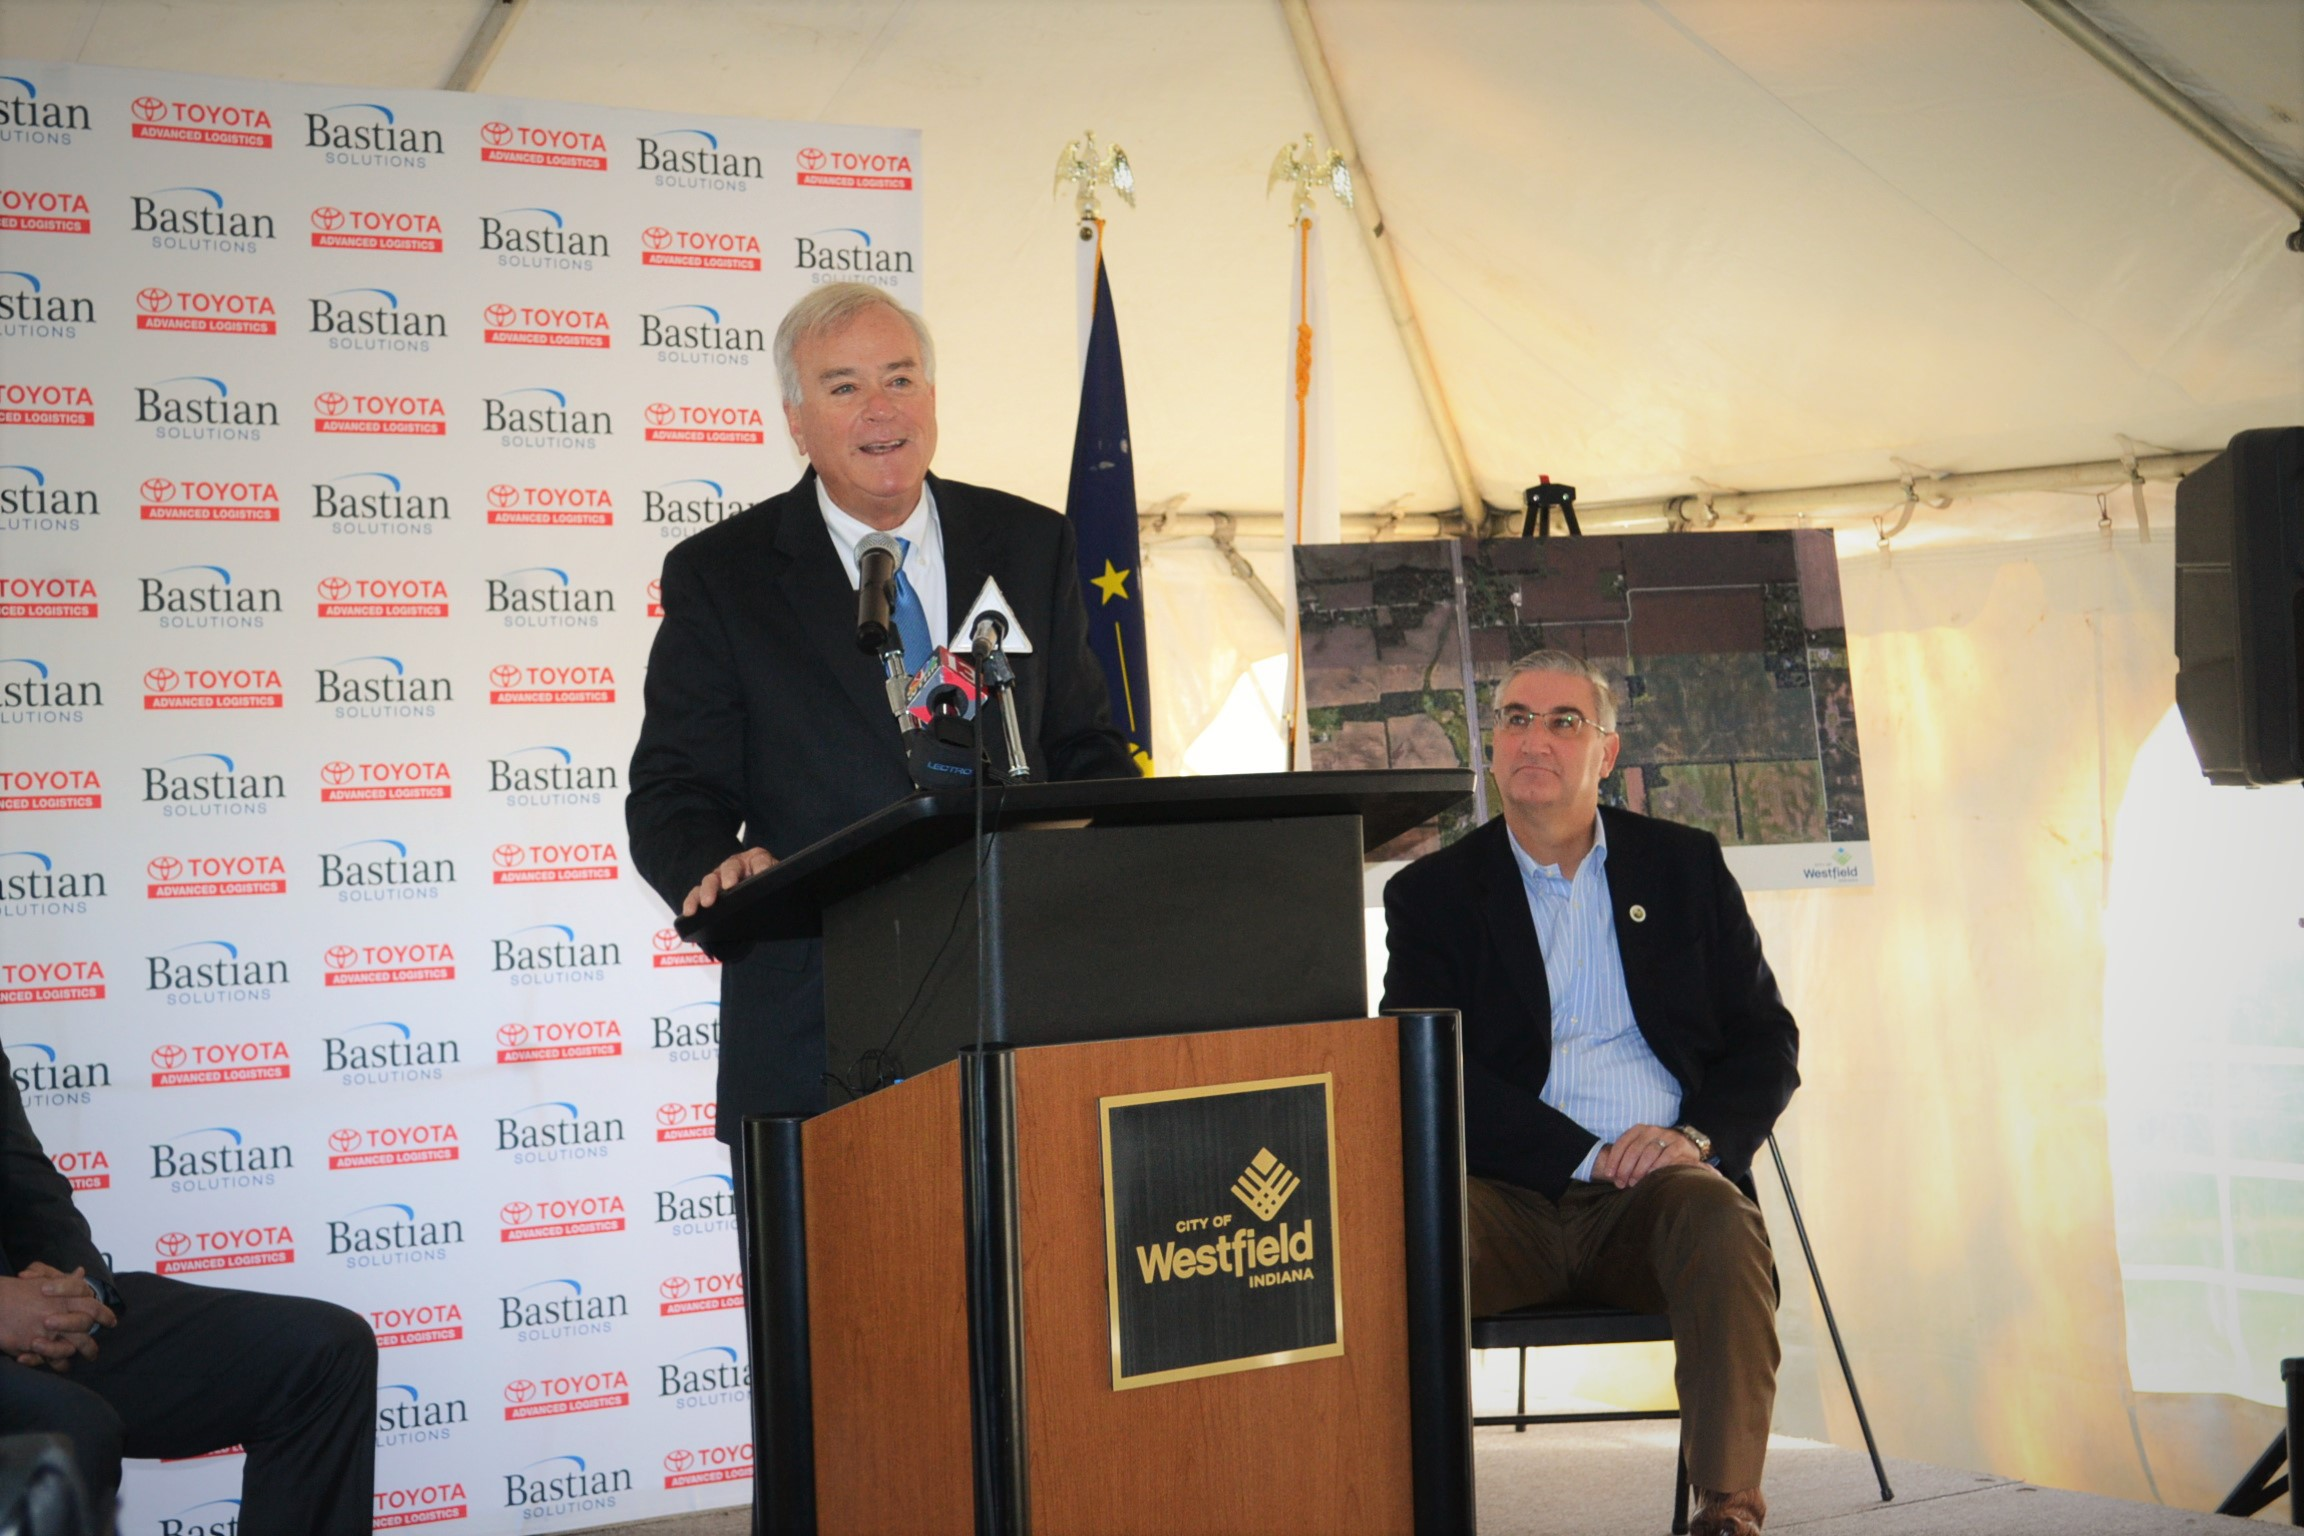 Photo for: Toyota-Owned Company Plans Fifth Indiana Facility, $8M Investment in Westfield